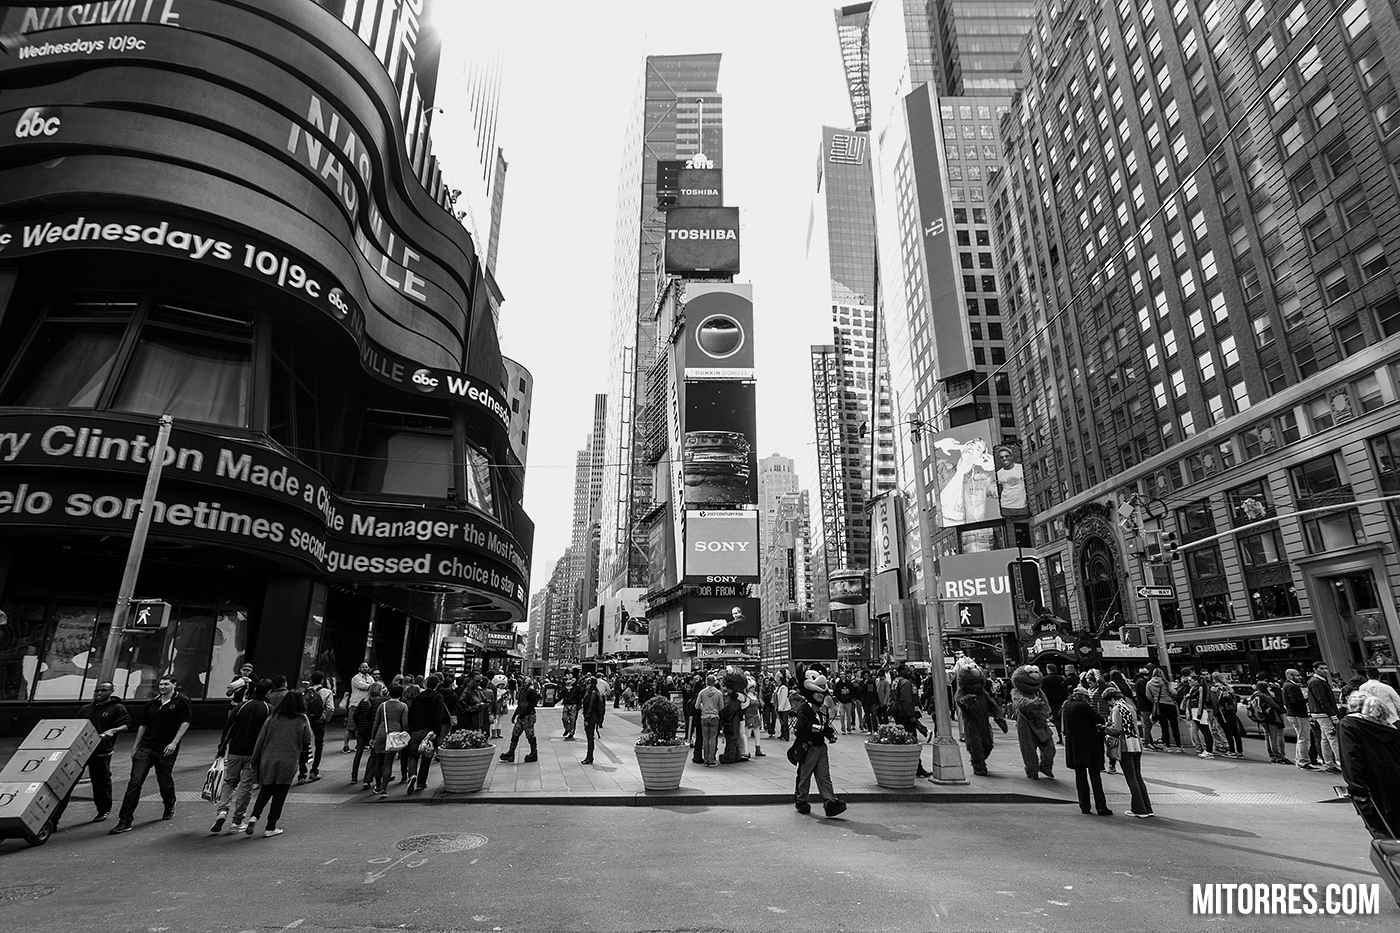 Times Square in New York City.